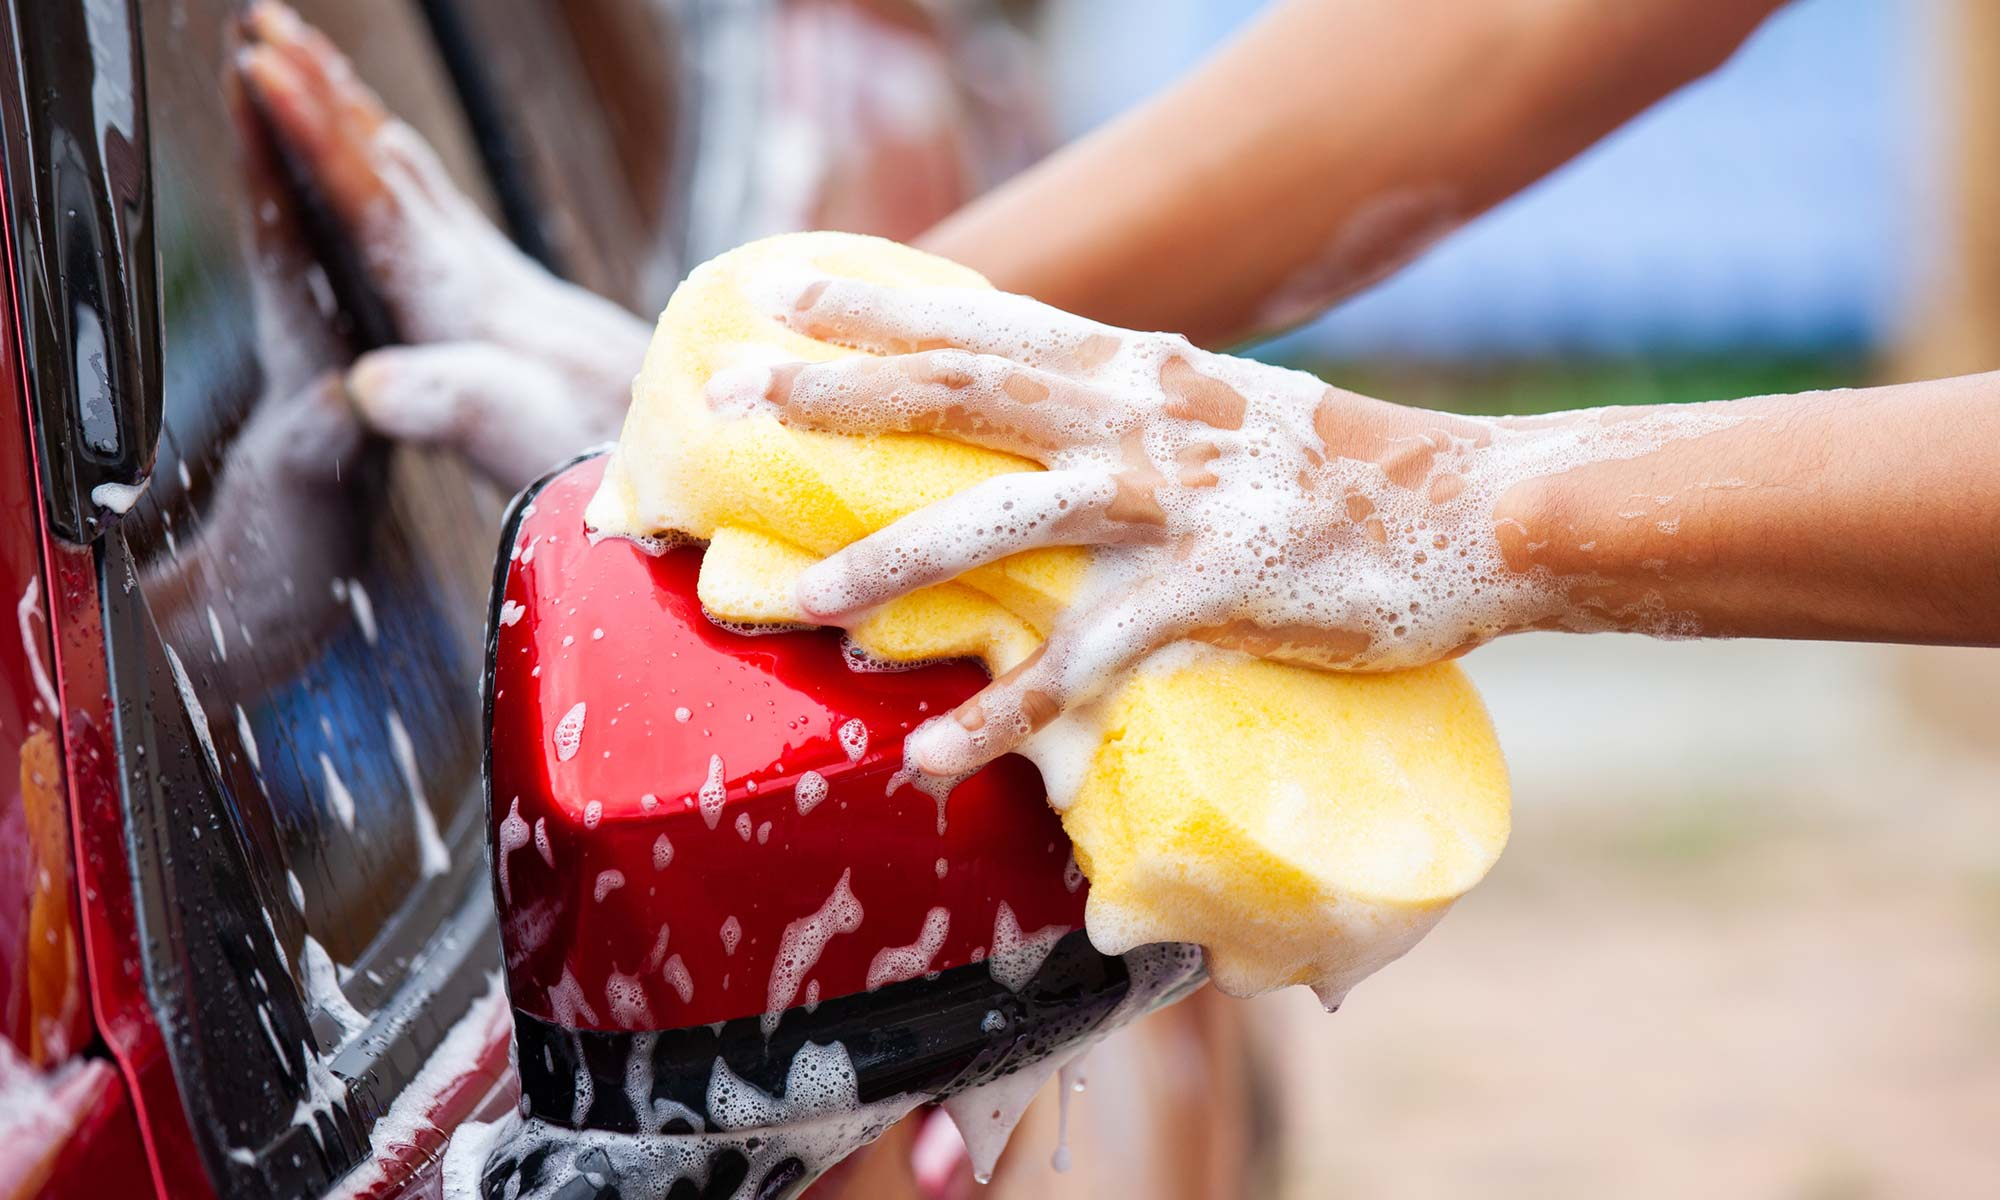 A close up image of a person washing a red car's driver-side mirror with sponge.